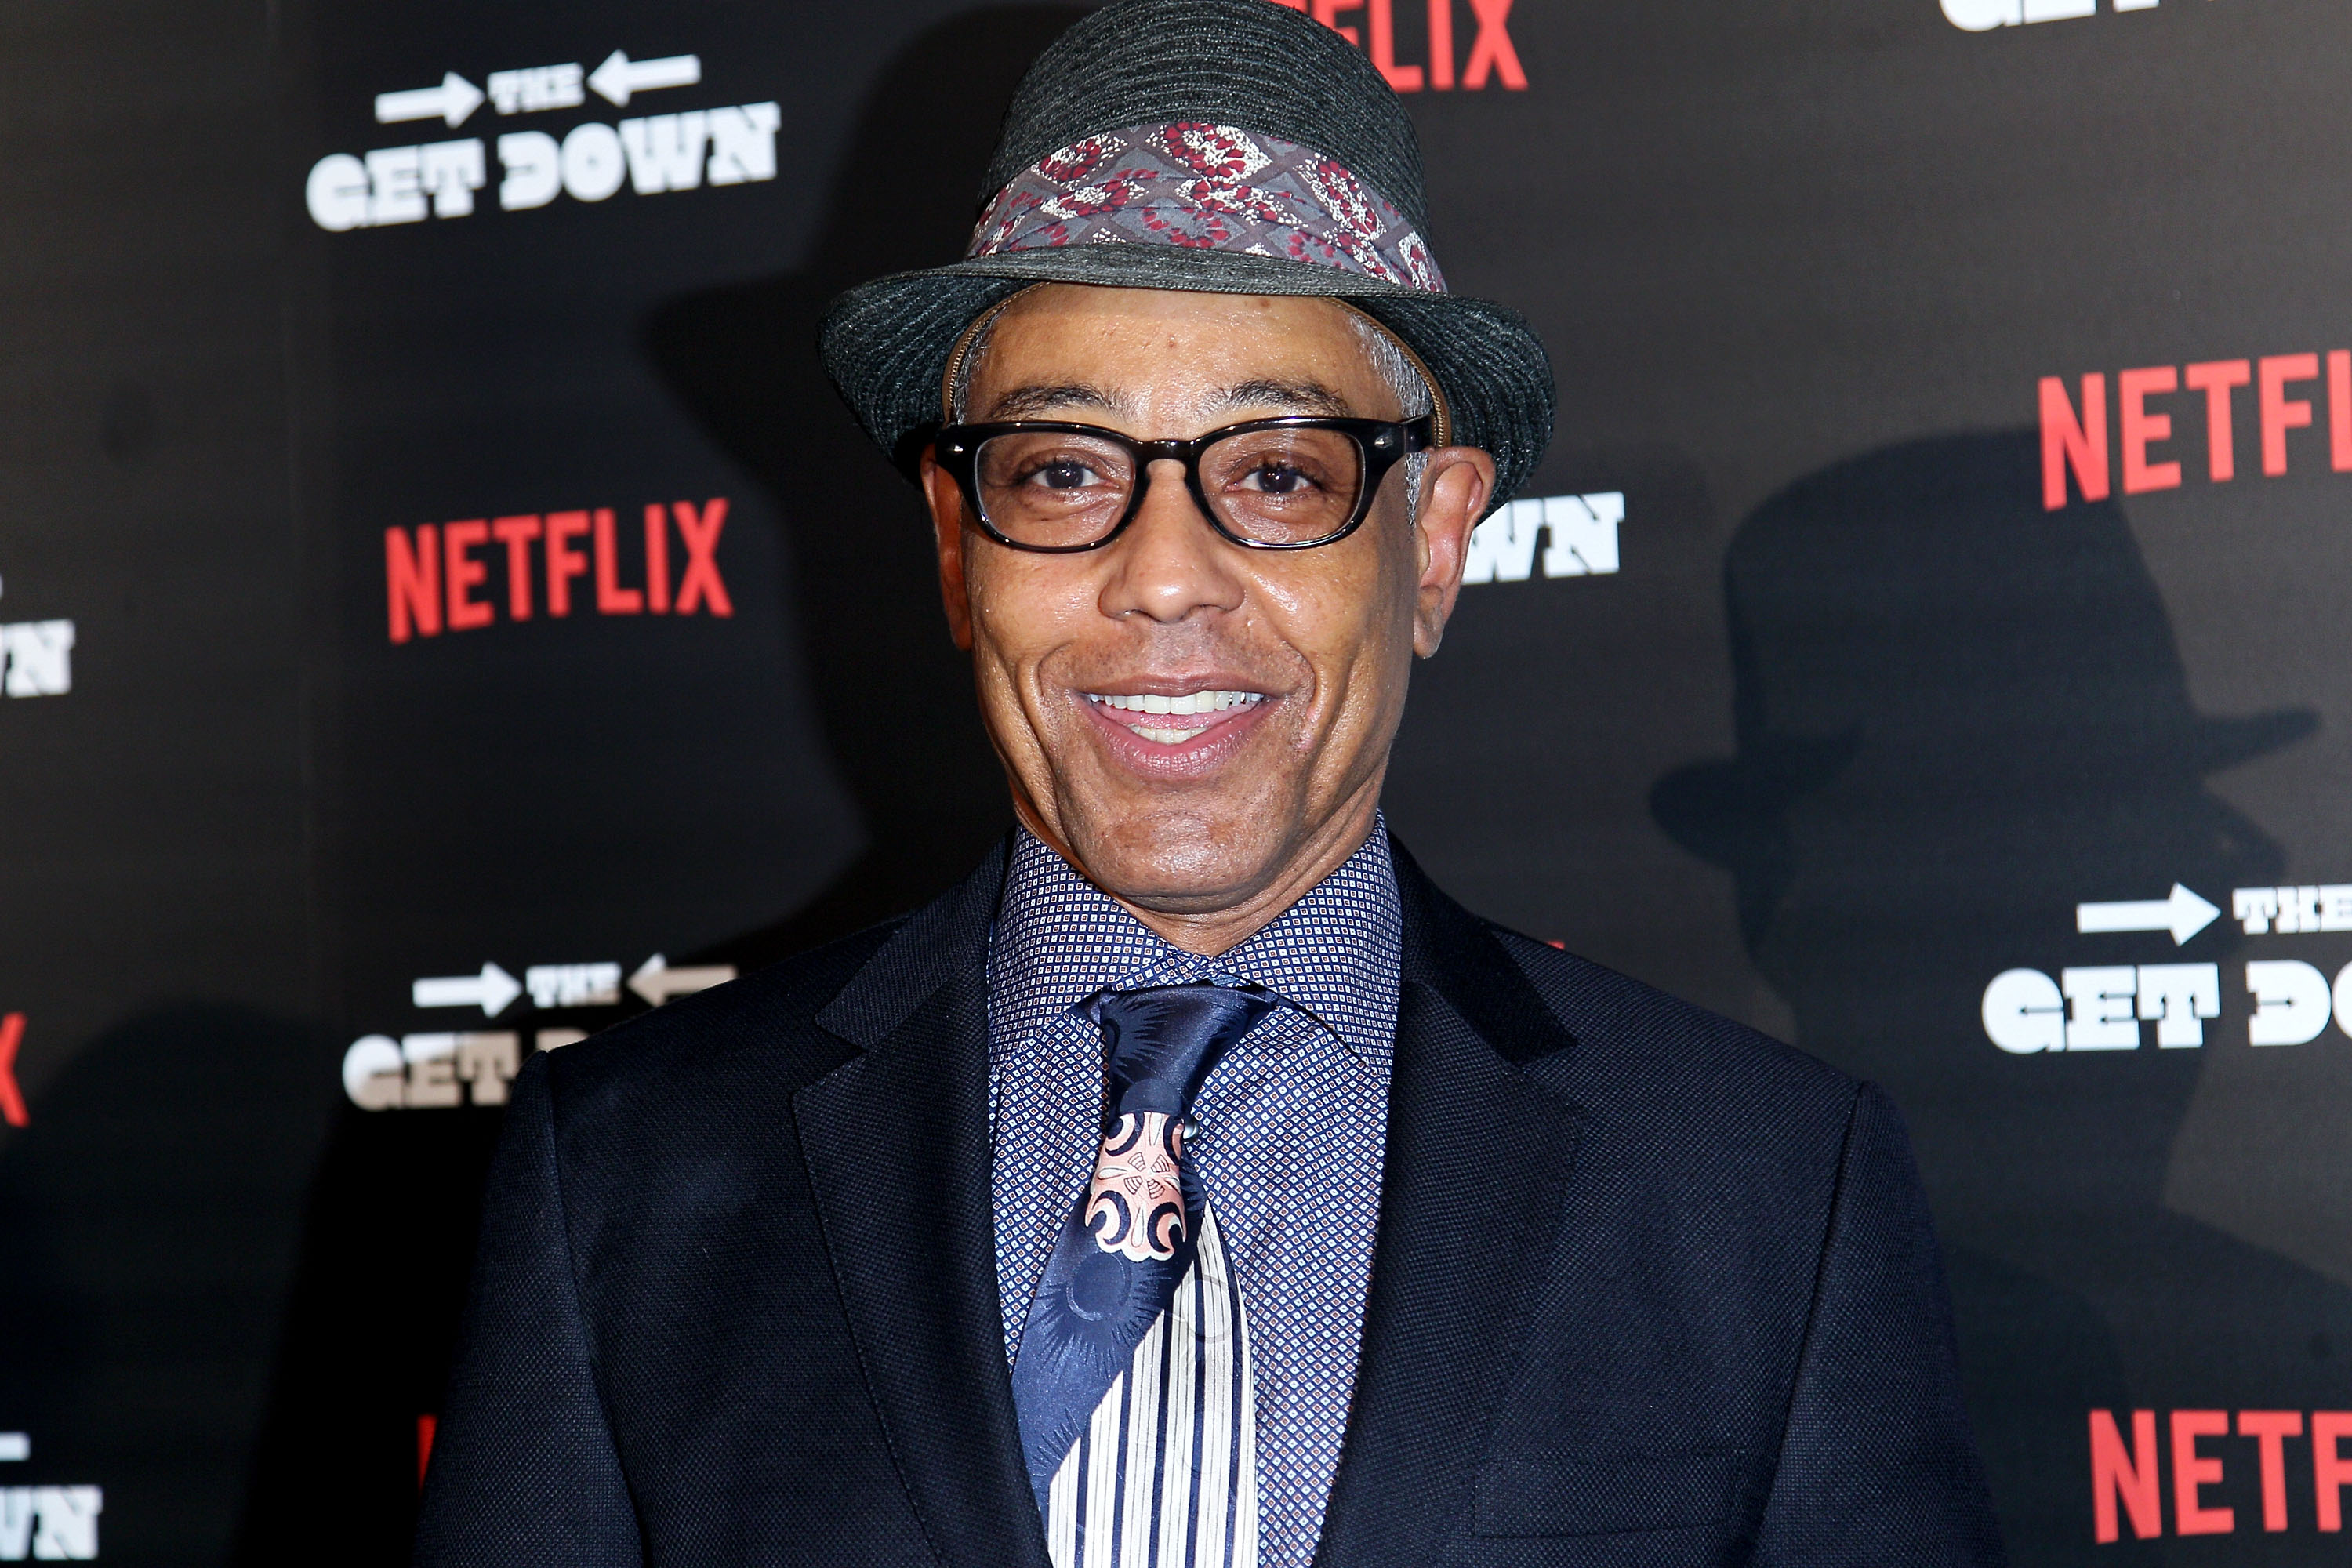 Giancarlo Esposito attends the  The Get Down  New York Premiere at Lehman Center For The Performing Arts on August 11, 2016 in New York City.